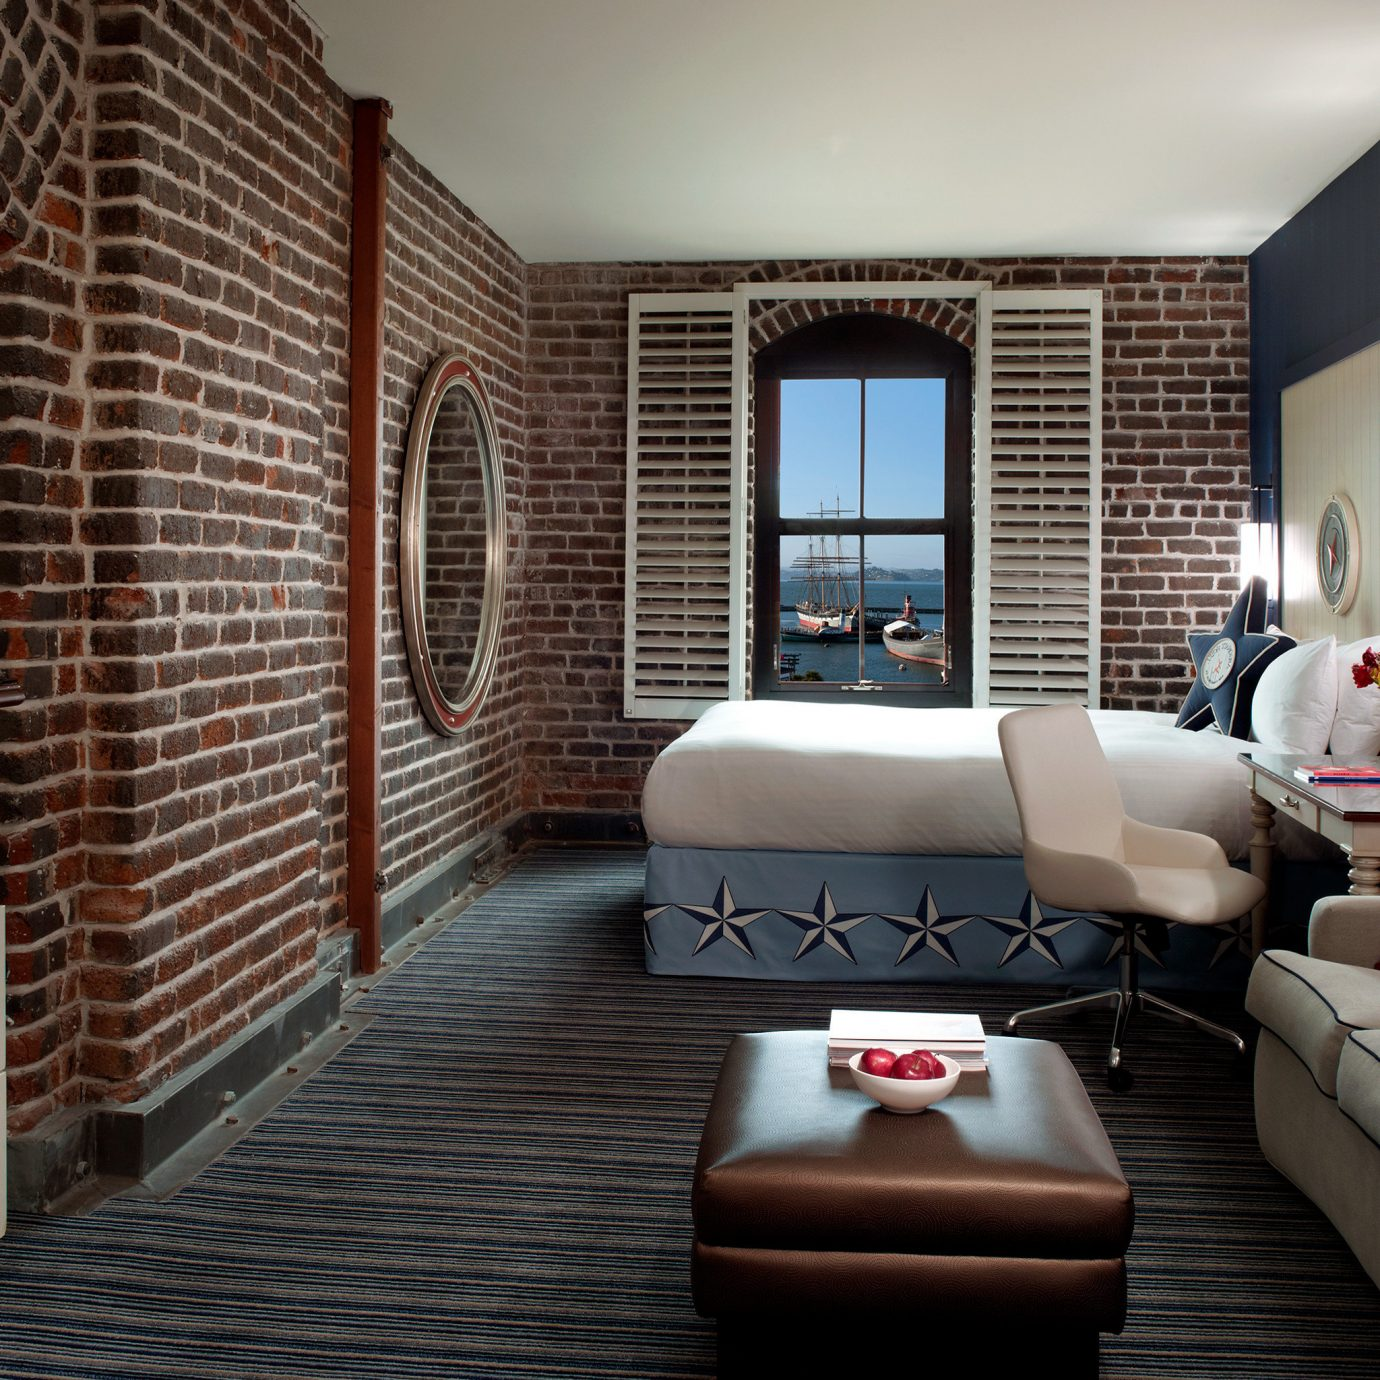 Bedroom City Historic Hotels Trip Ideas sofa living room property condominium home Suite Lobby